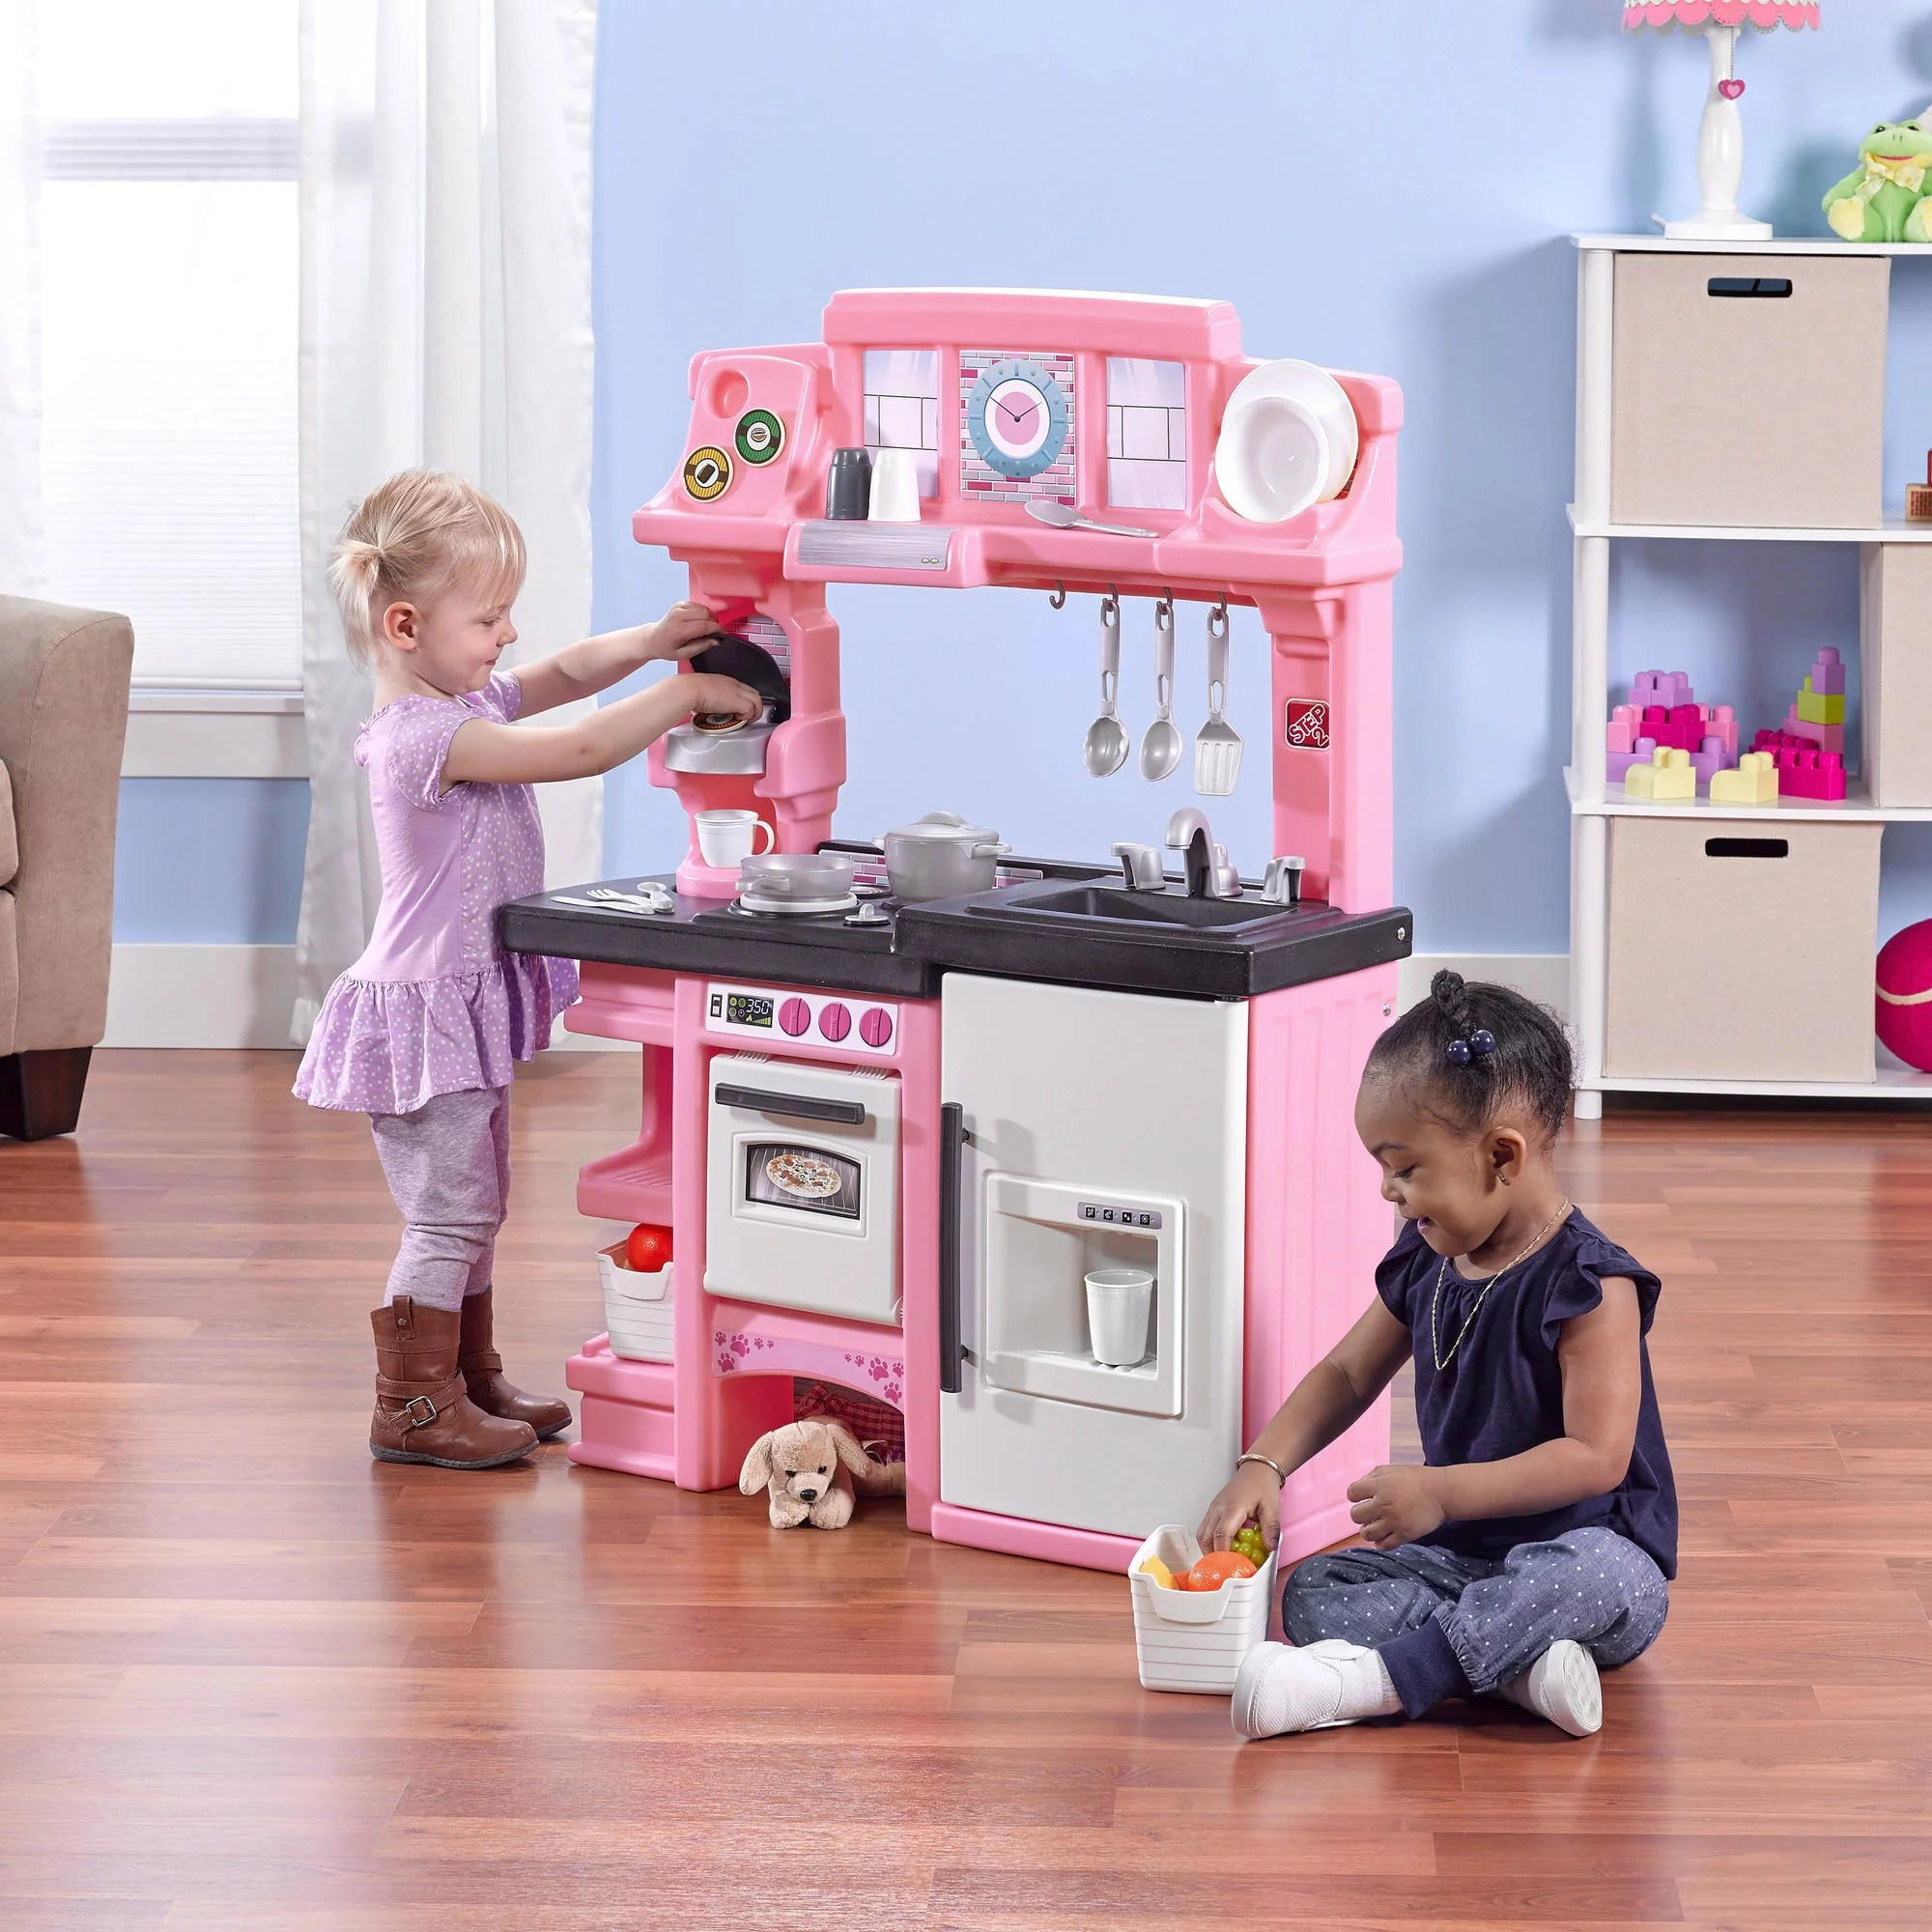 kitchen set for girl modular outdoor kitchens lowes american plastic toys cookin walmart